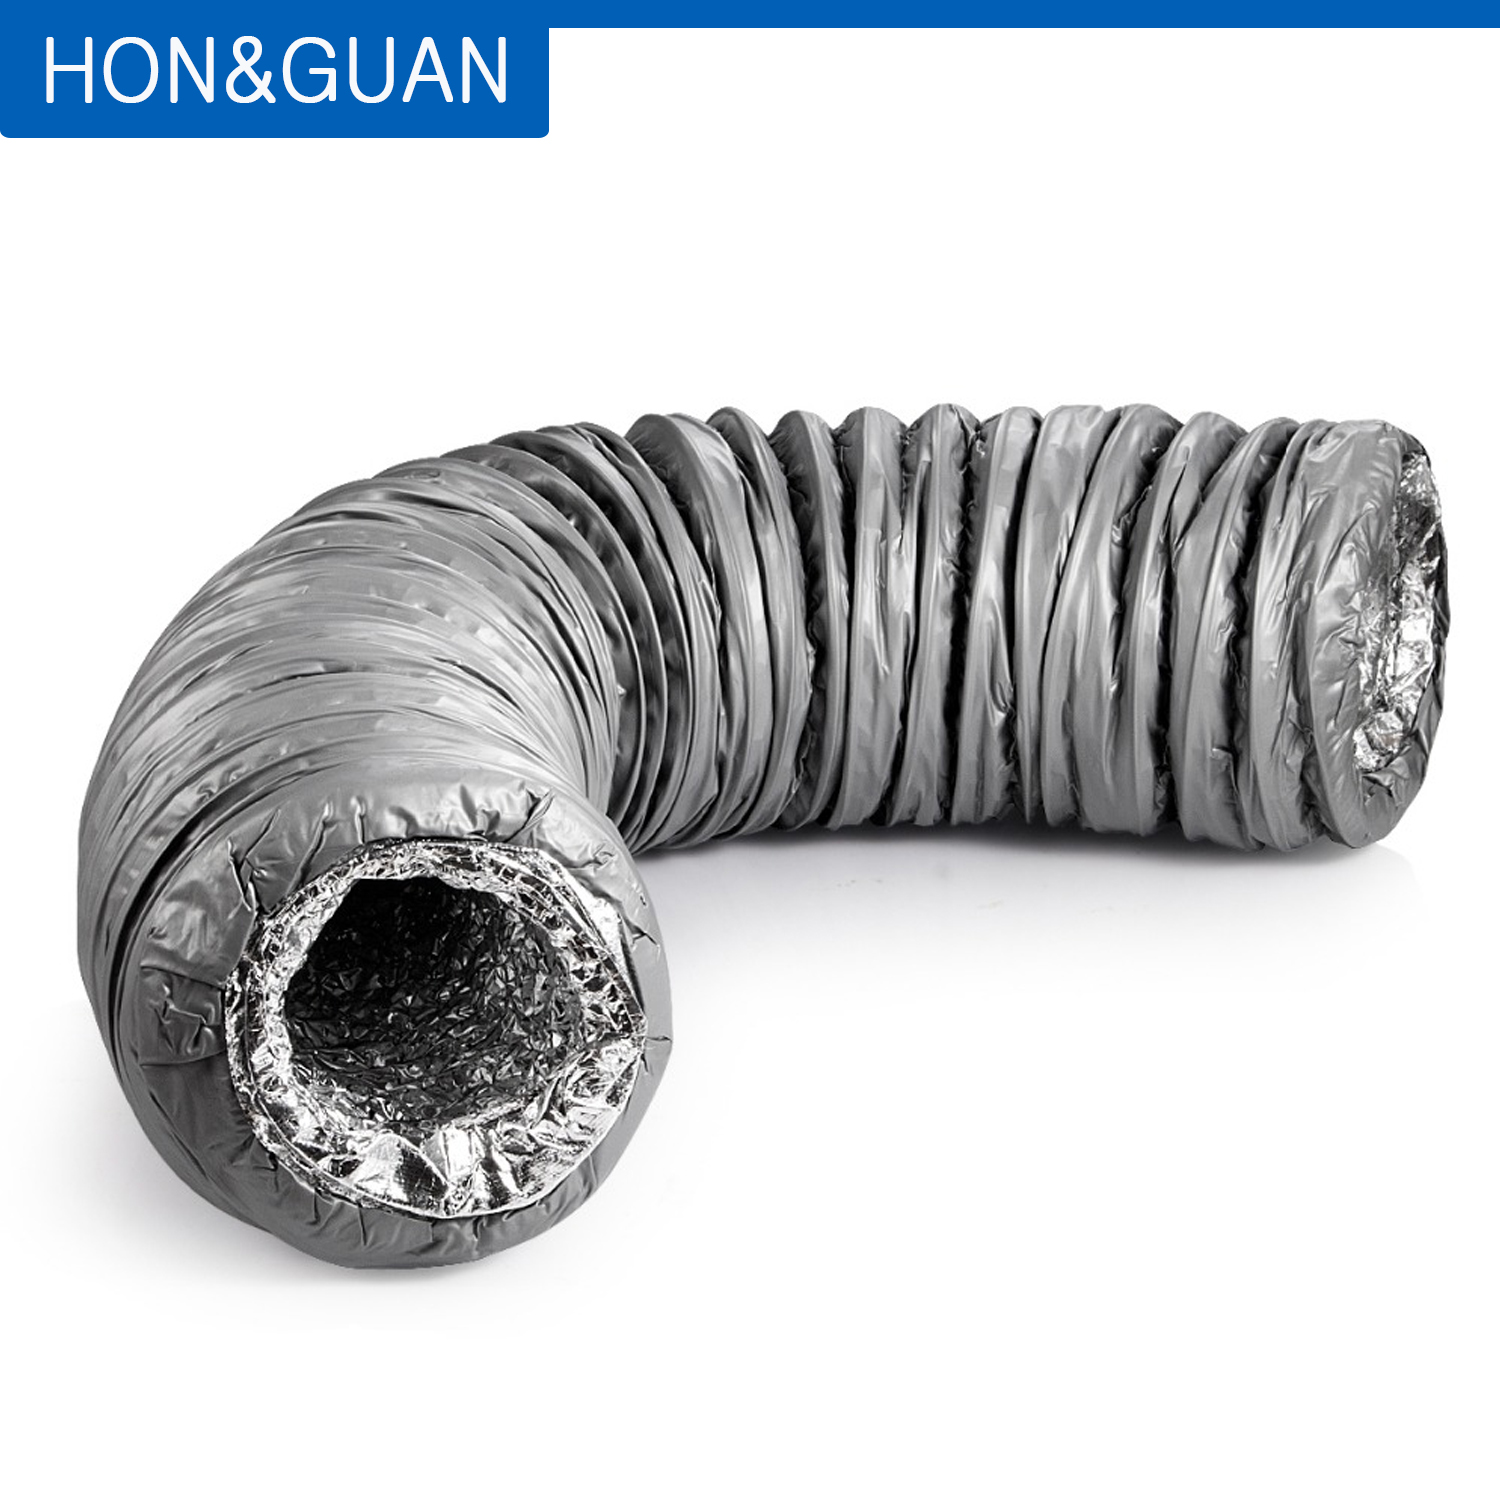 4 Inch Bewox Flexible Ventilation Duct Exhaust Hose for Portable Air Conditioner